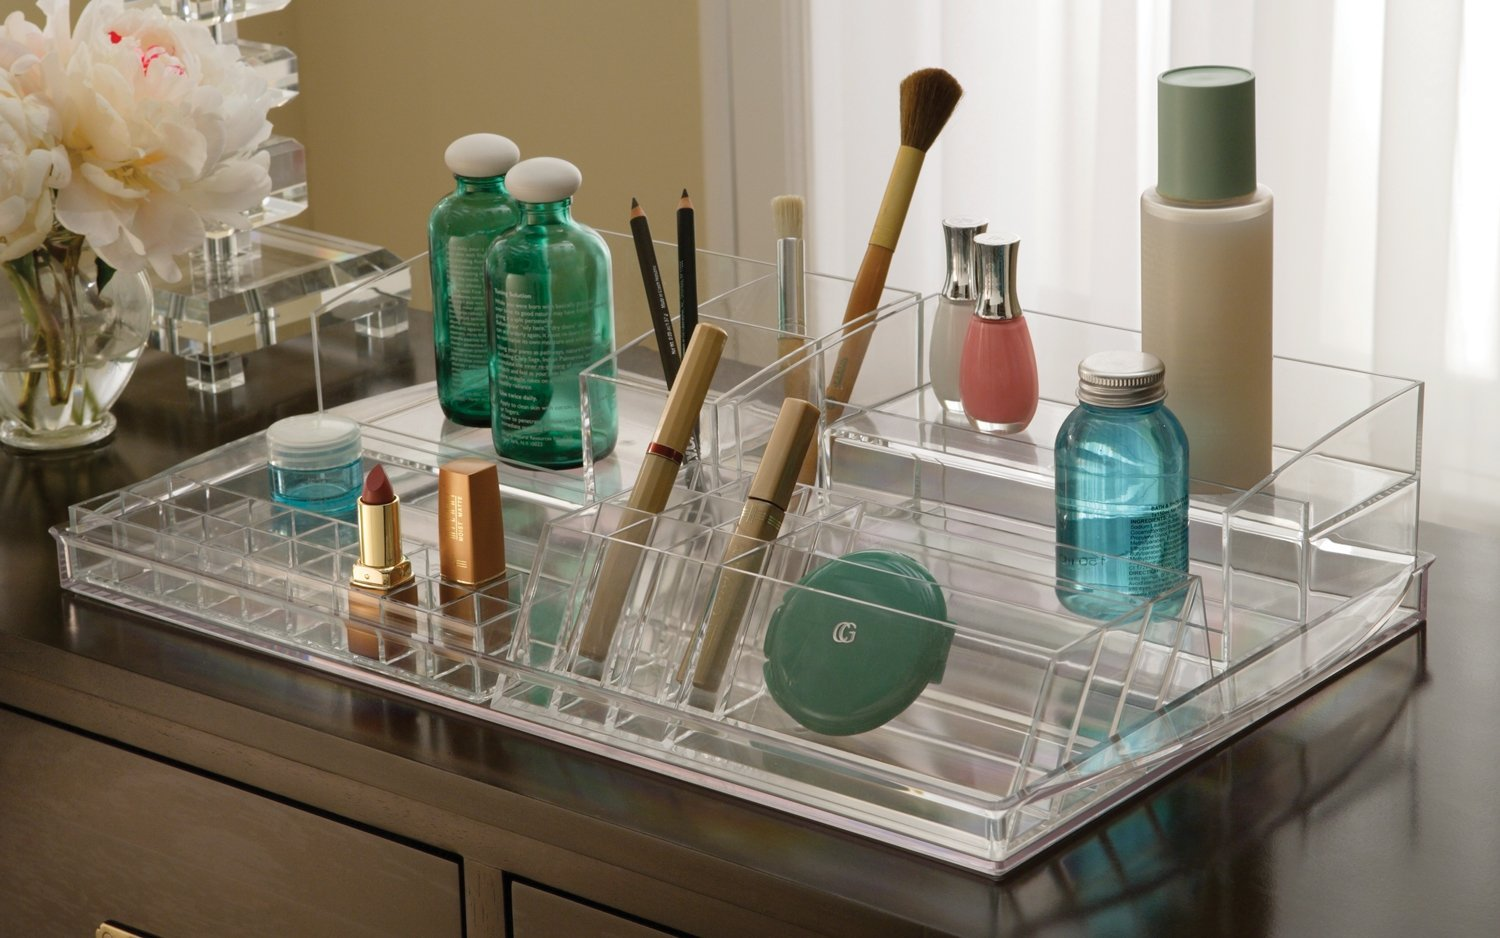 Bathroom makeup organizers - Bathroom Makeup Organizers